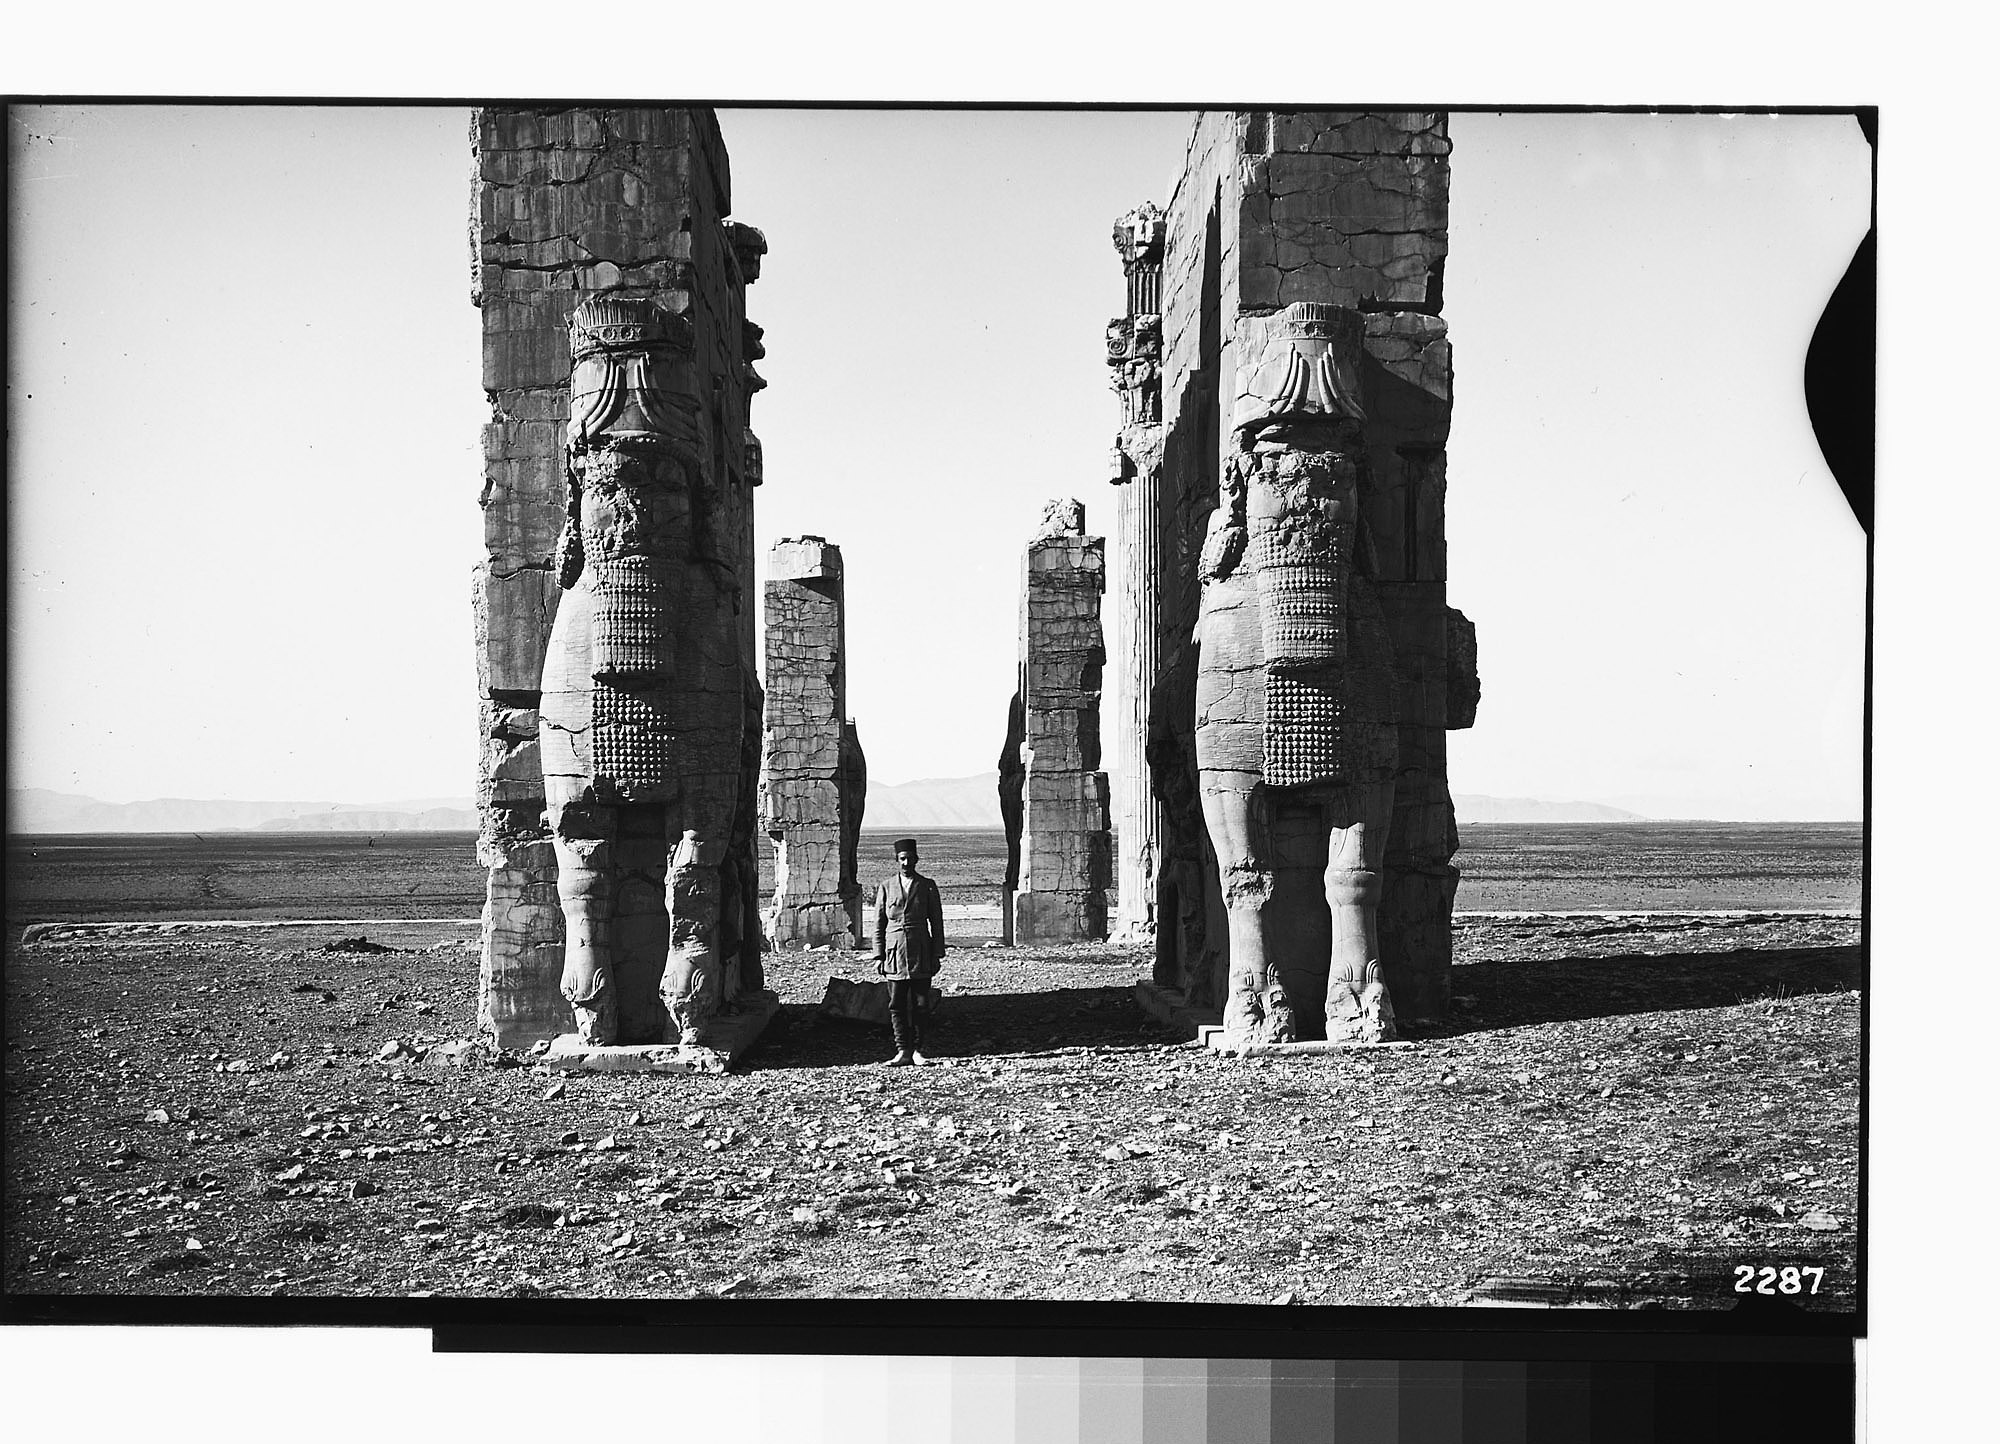 images for Excavation of Persepolis (Iran): Gate of All Lands, Colossal Sculptures Depicting Man-Bulls: View before Excavation, Looking West graphic